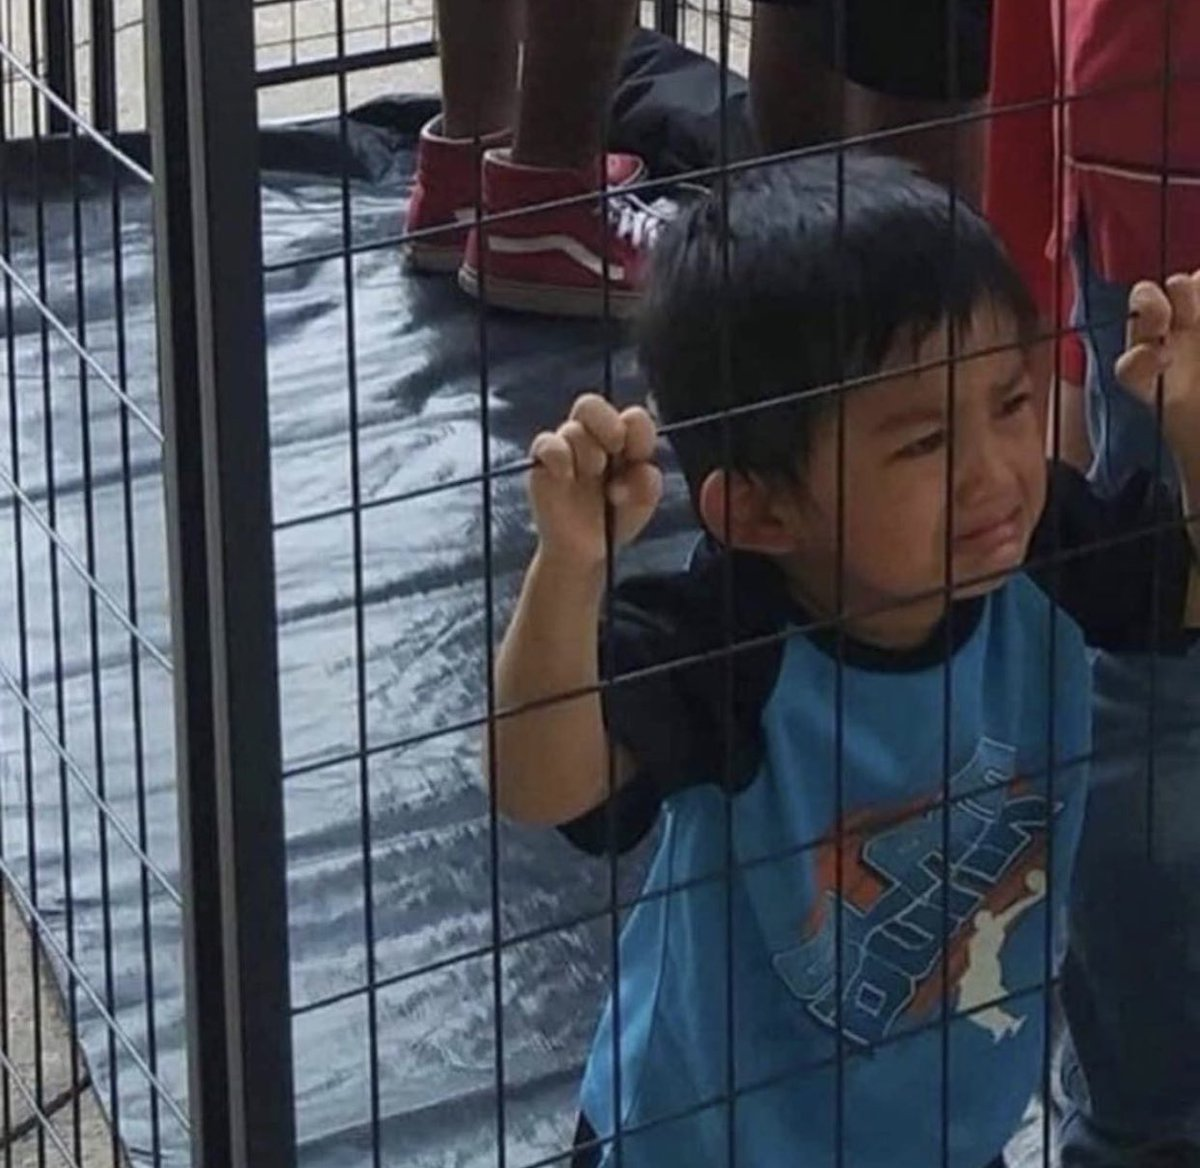 """""""Land of the free """" Yeah let's just forget the fact that people are in cages ;)  #WhatAreYouCelebrating #ice https://t.co/6ZieOc1rCd"""